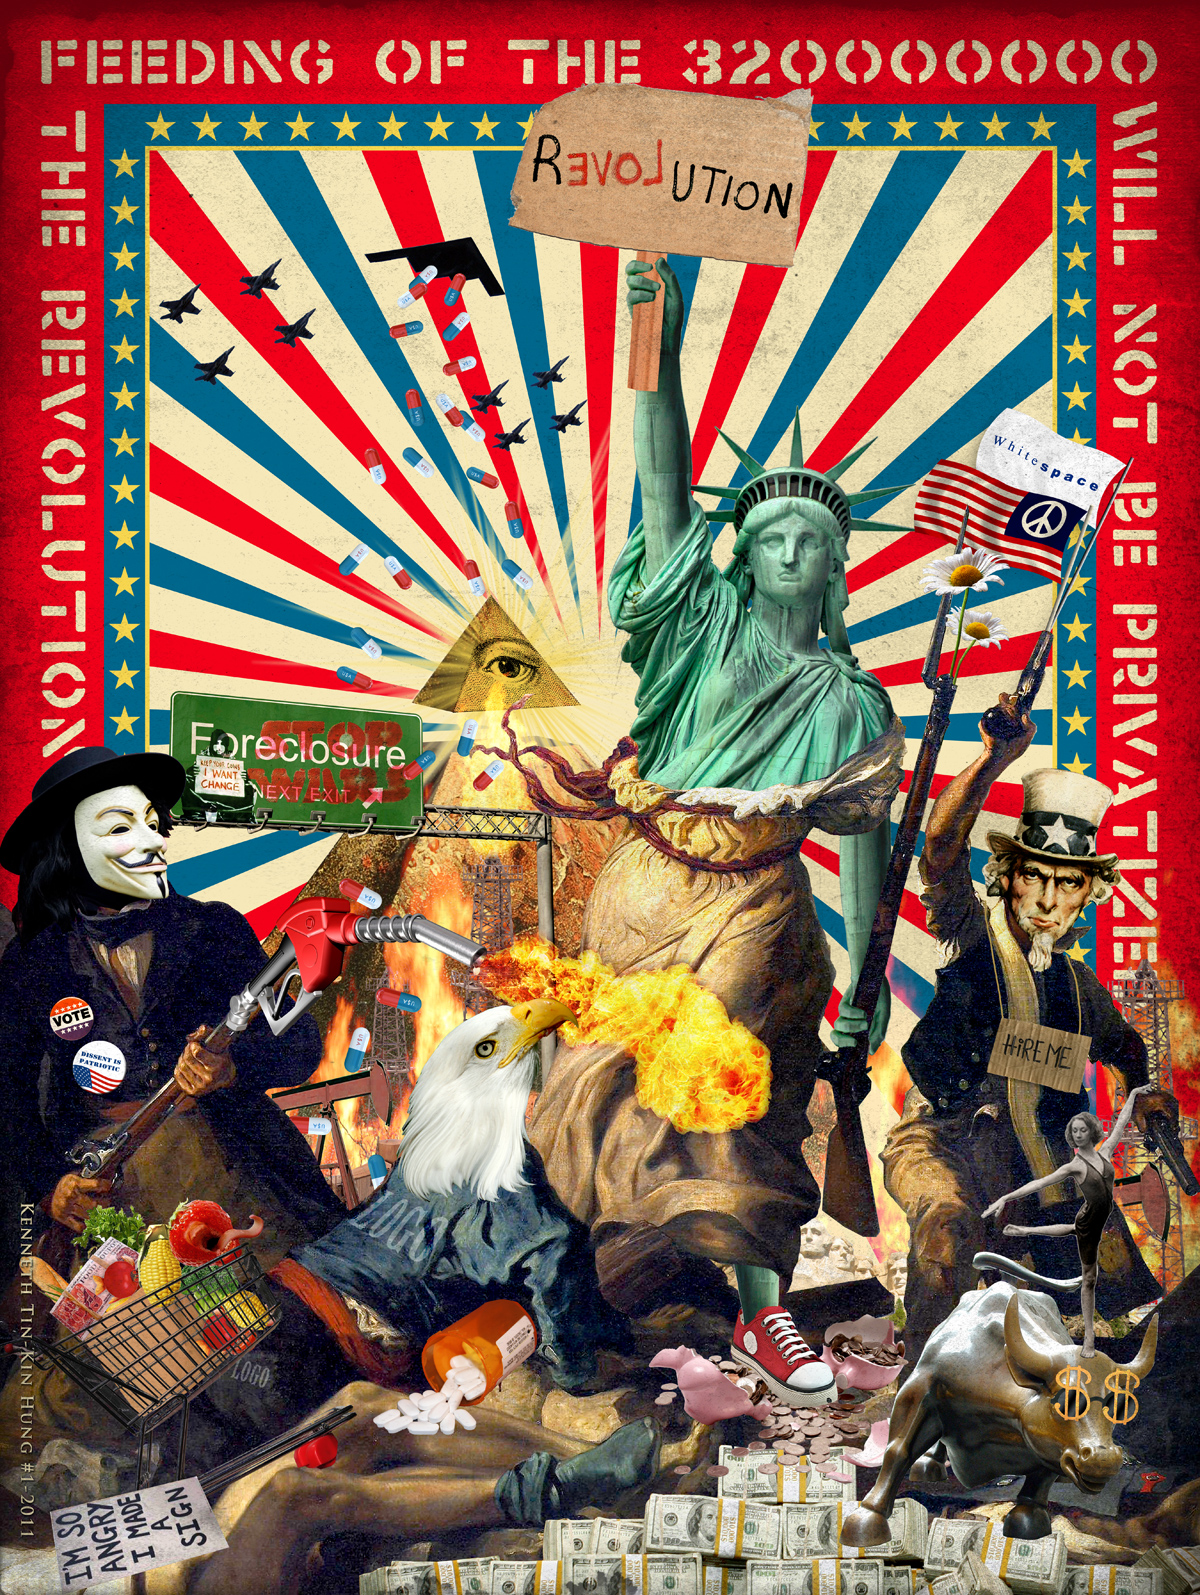 Wall Street Bull Art occupy wall street posters » kenneth tin-kin hung » kenneth tin